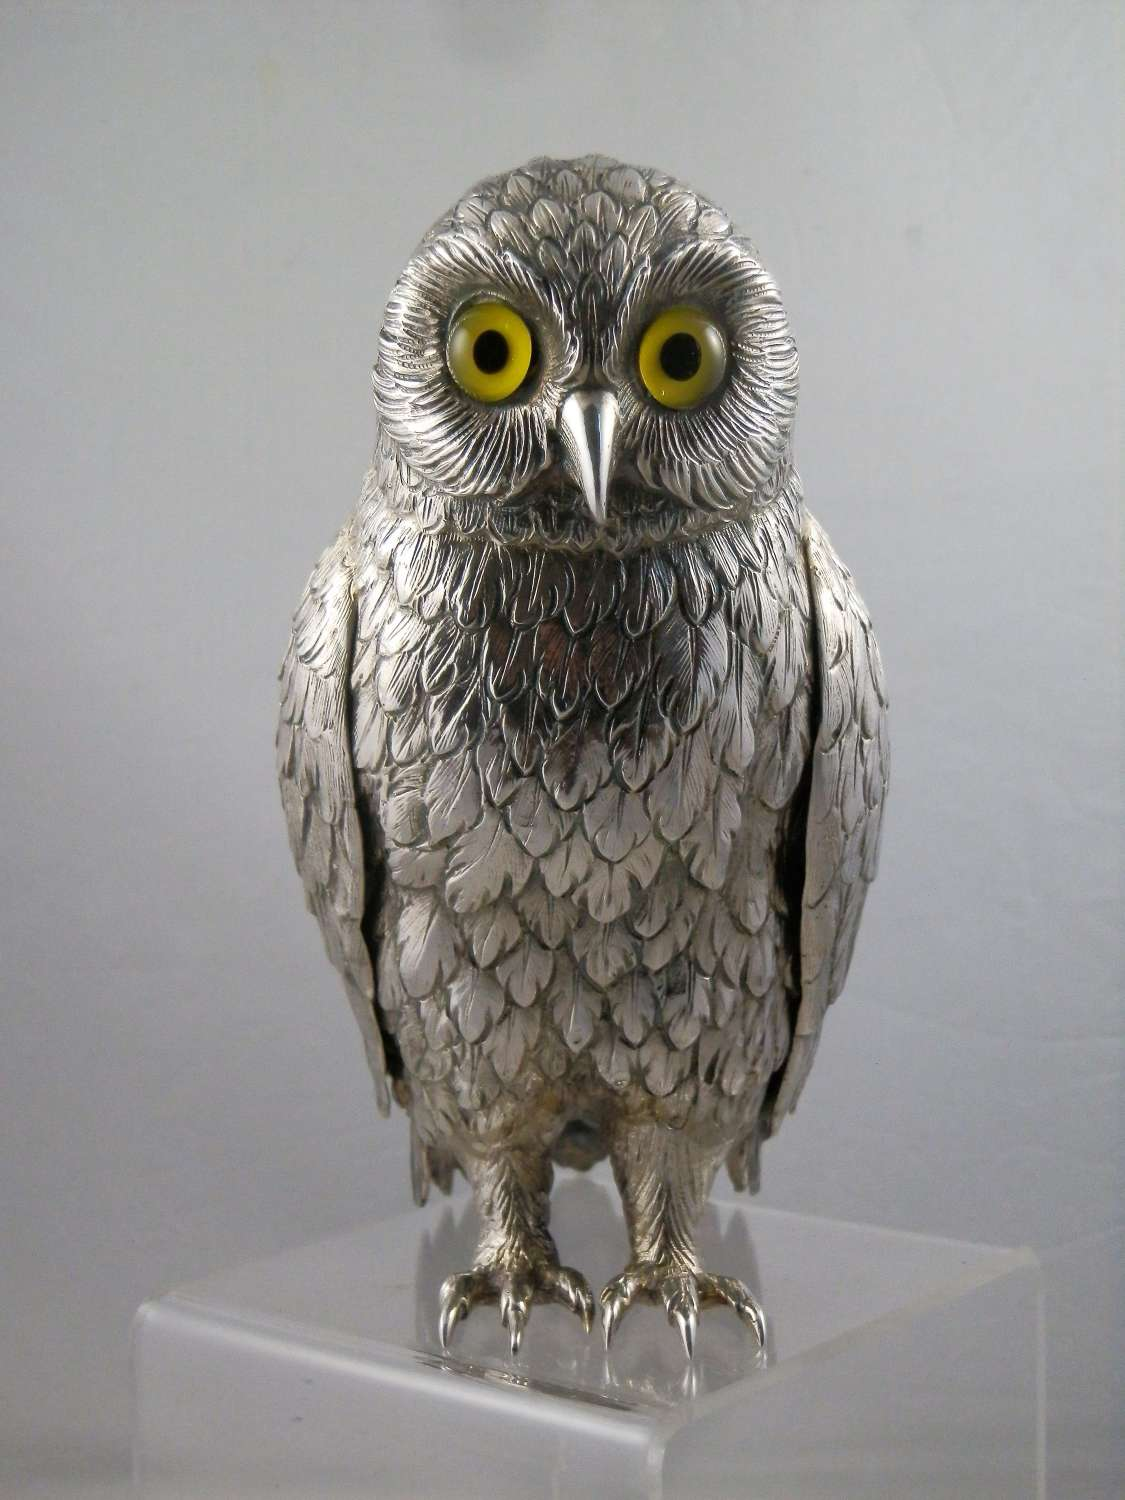 Silver Owl ornament, London, 1968